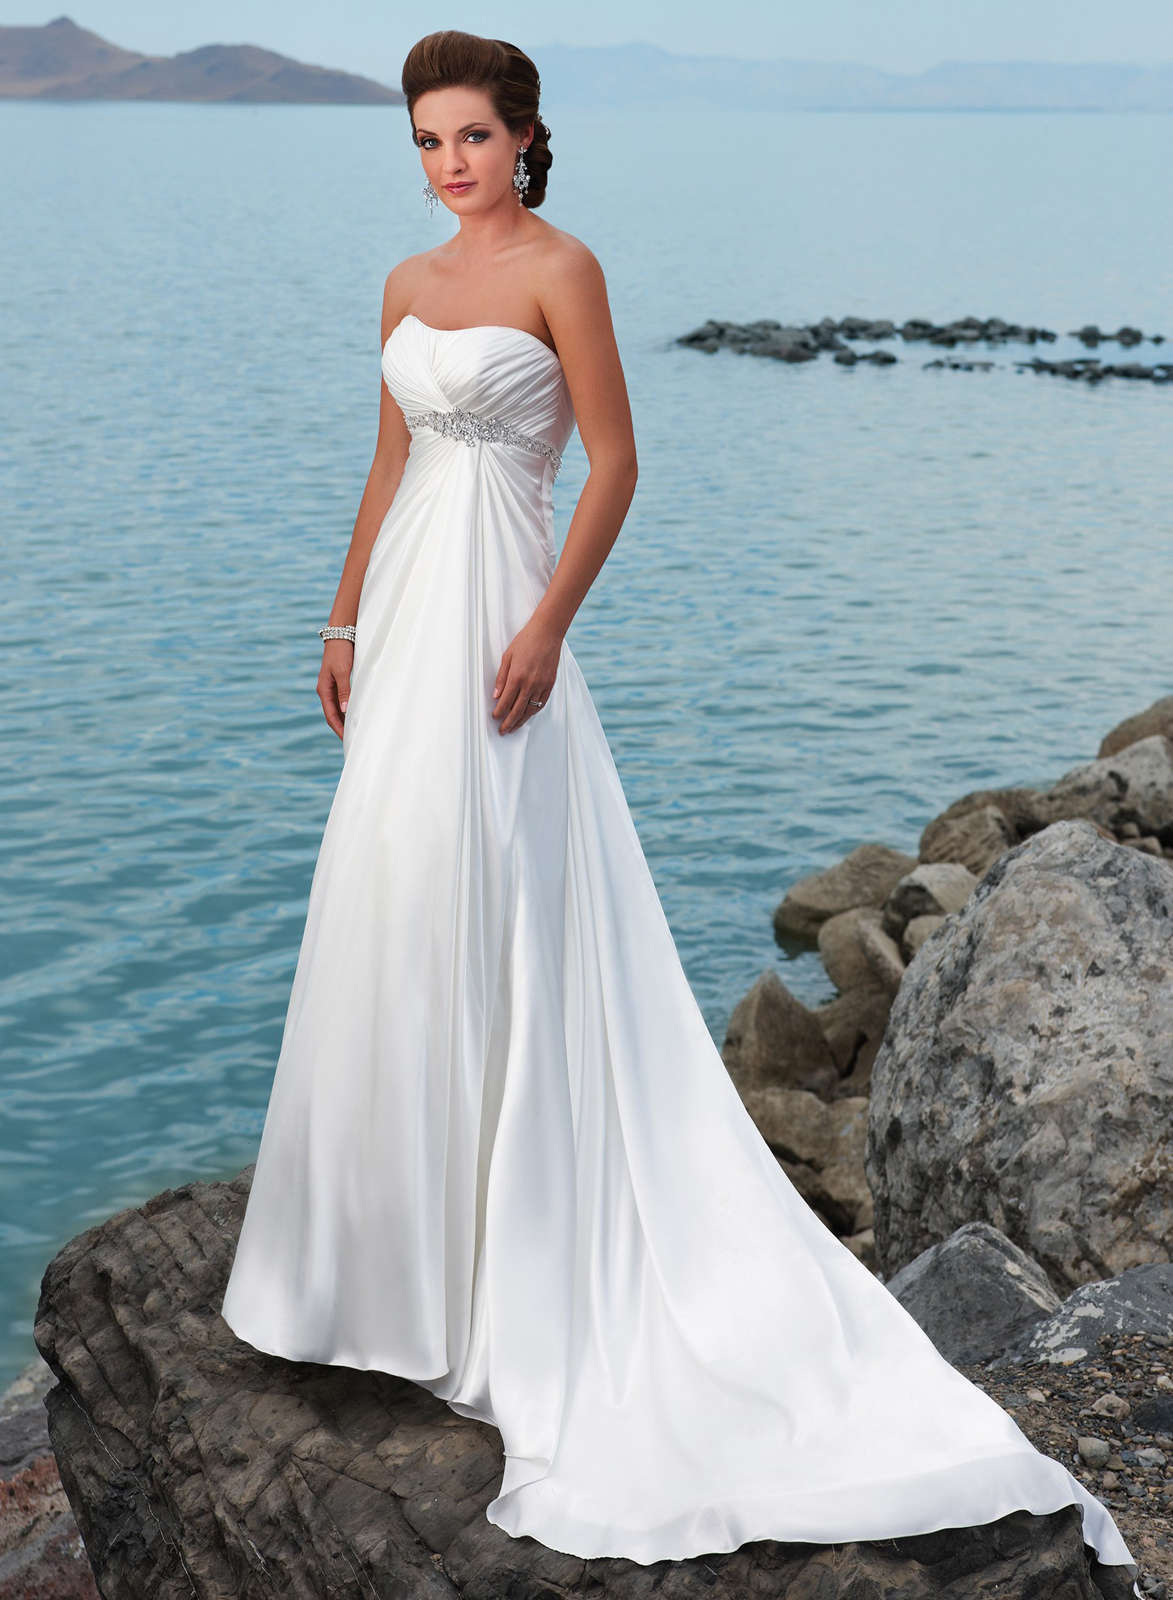 Beach Wedding Dresses | Dressed Up Girl